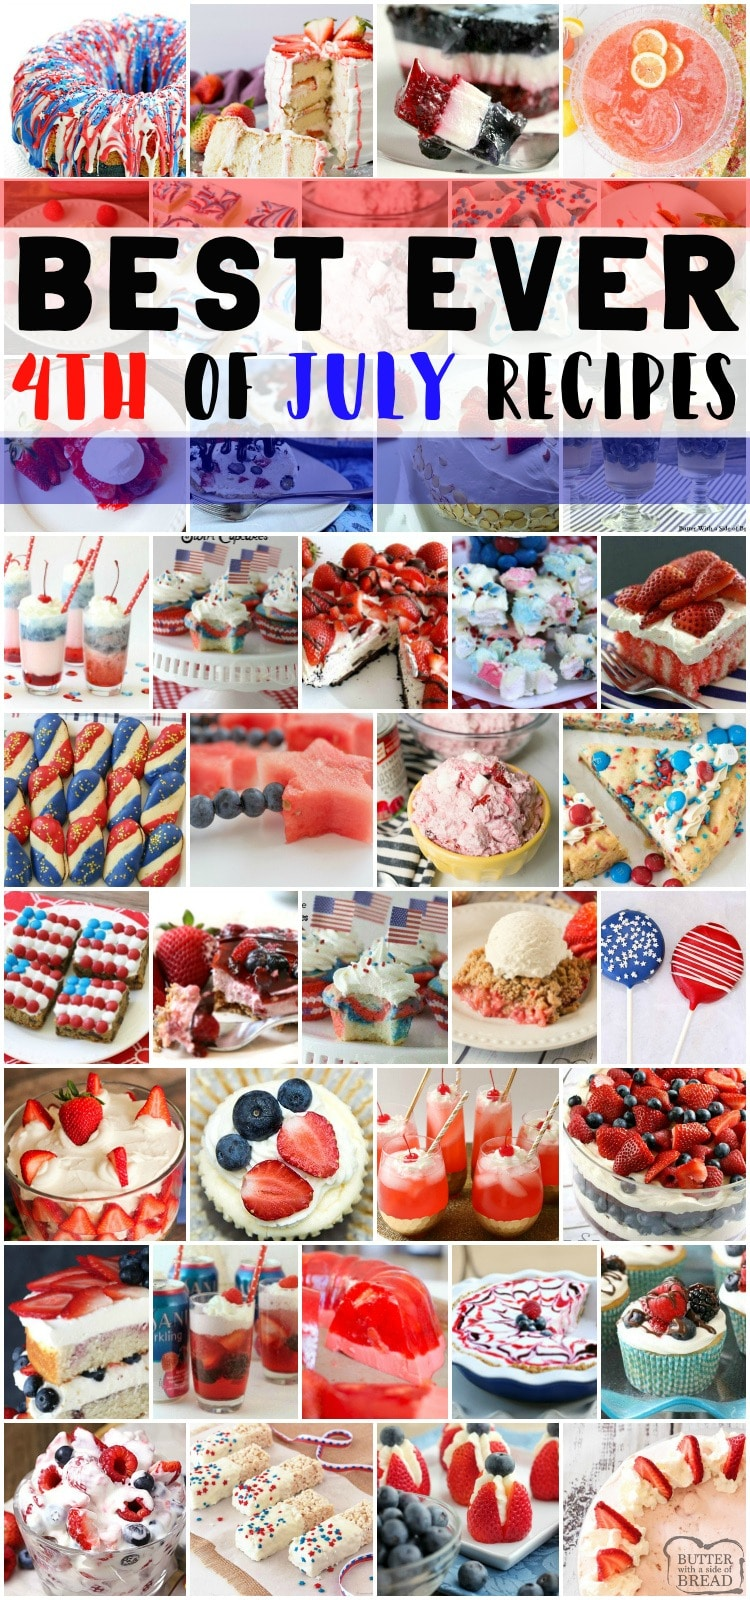 4th of July Dessert recipes that are sweet, festive and perfectly patriotic! Easy red, white & blue recipes that come together fast and everyone loves! #patriotic #4thofjuly #dessert #recipesfrom Butter With a Side of Bread